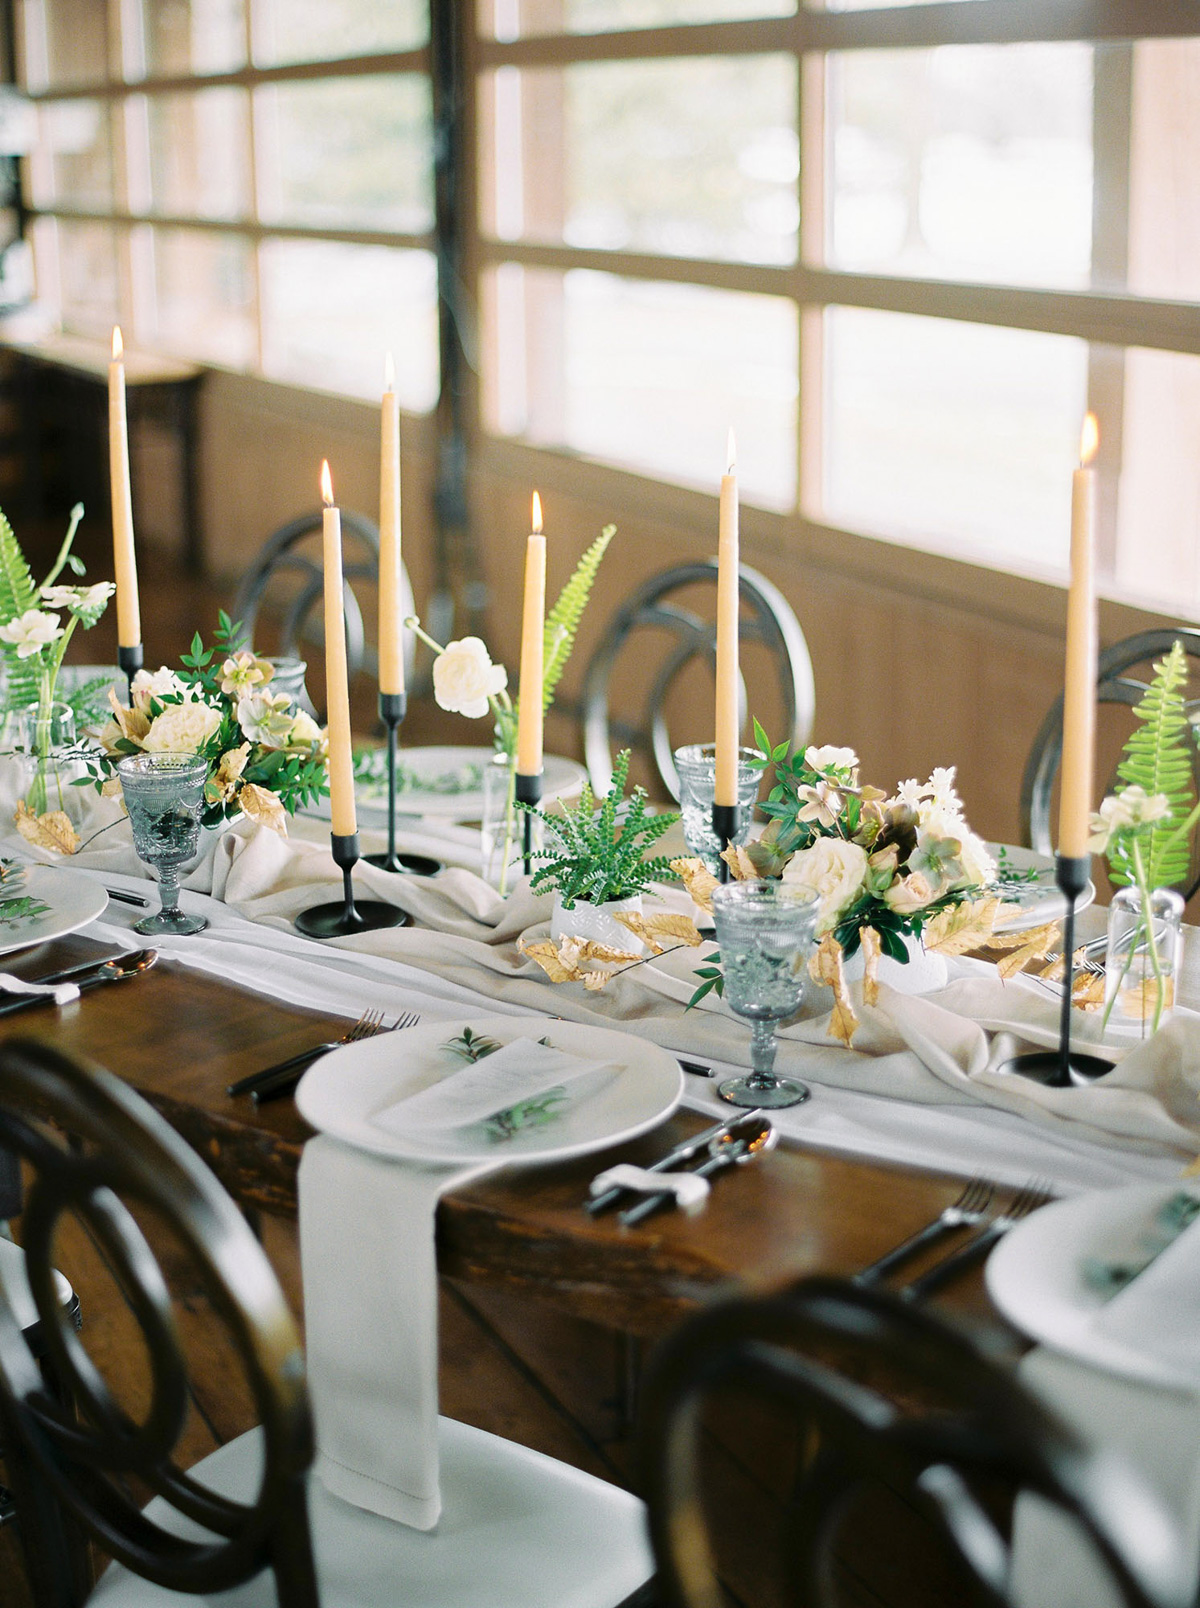 will-reid-photo-vineyard-bride-swish-list-kurtz-orchards-market-niagara-on-the-lake-wedding-editorial-10.jpg